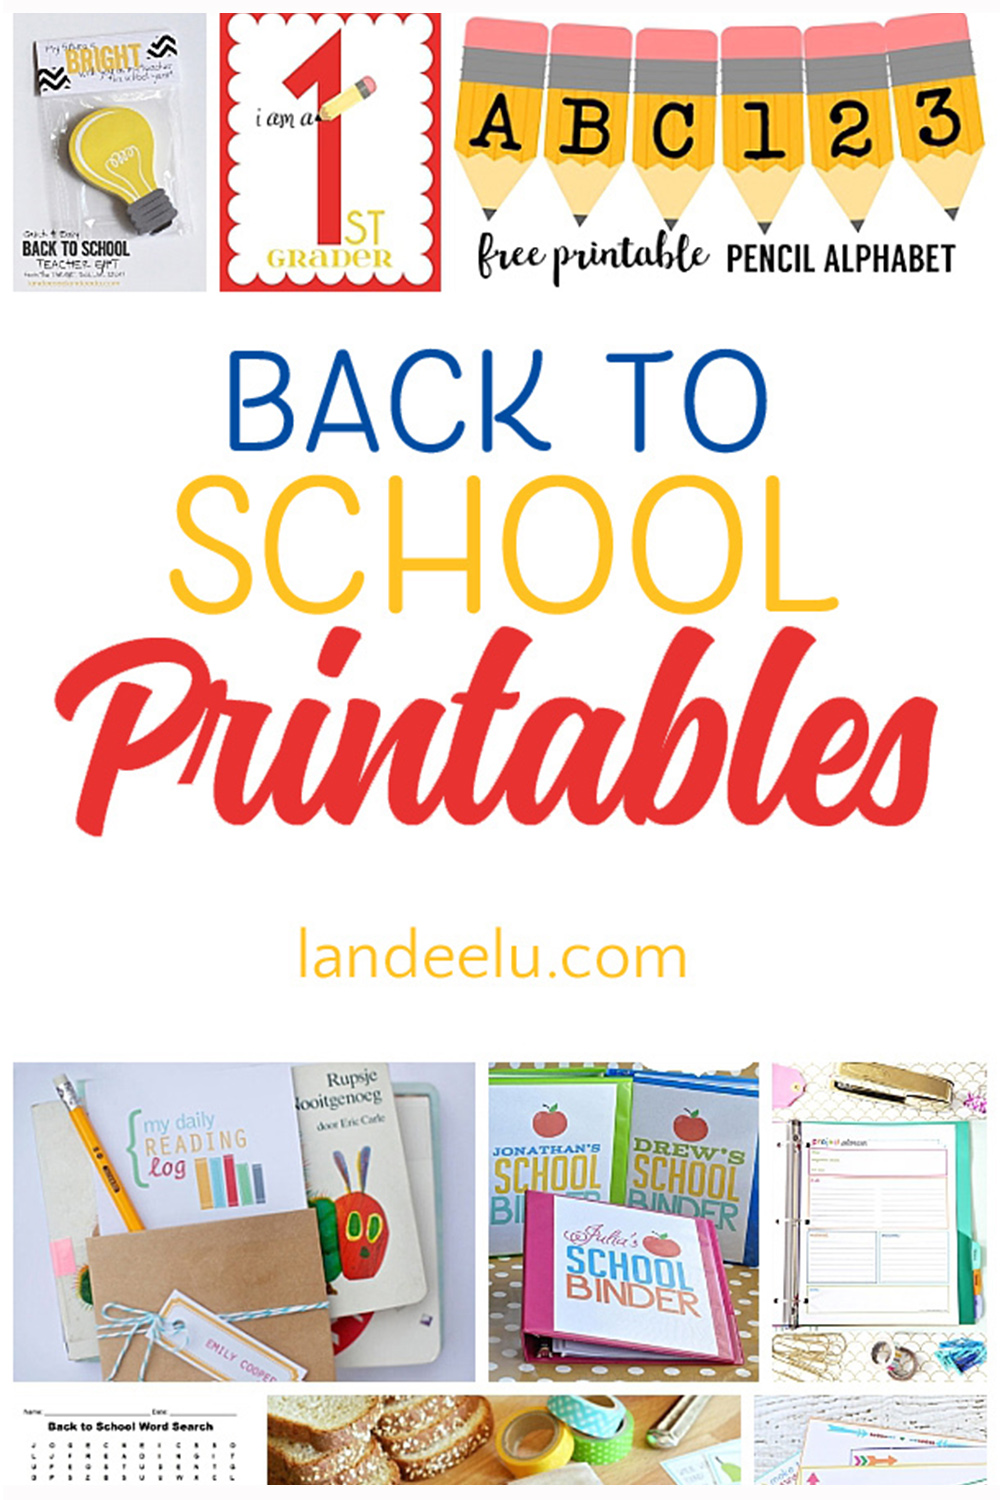 image about Back to School Word Search Printable referred to as 20 Incredible Back again toward University Printables -